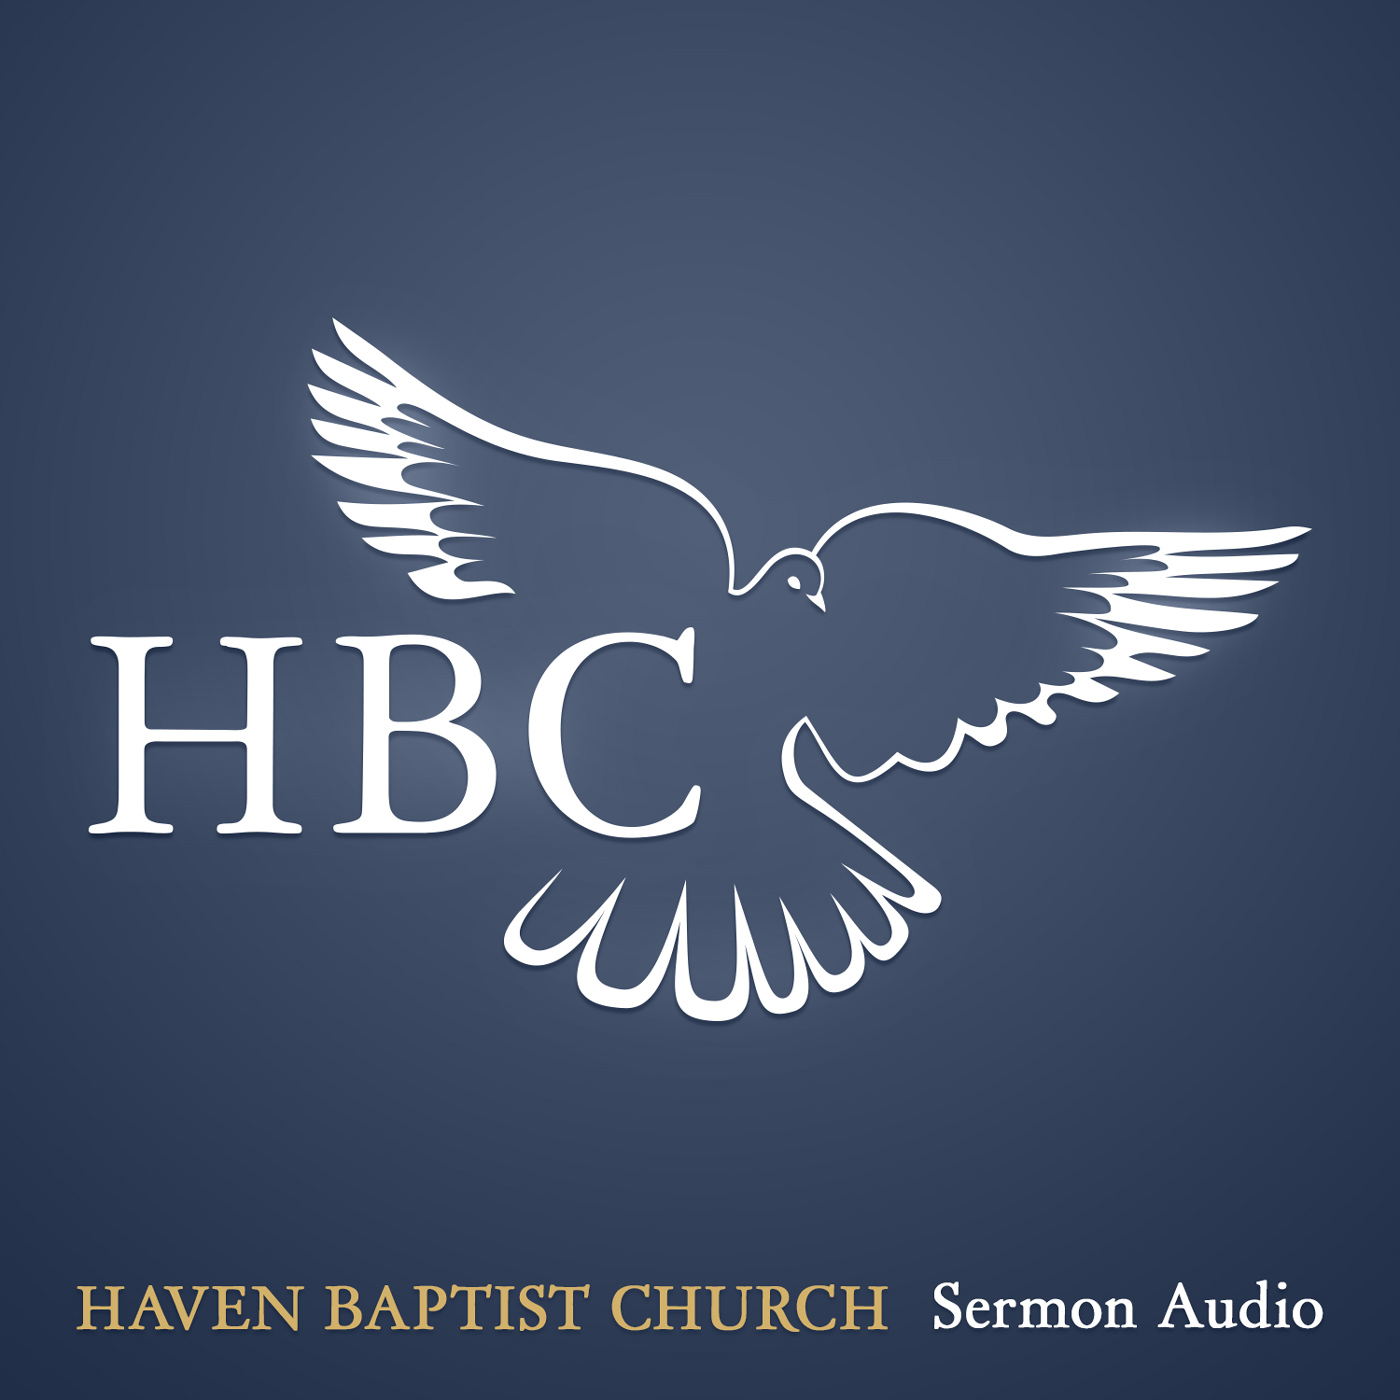 Haven Baptist Church: Sermon Audio